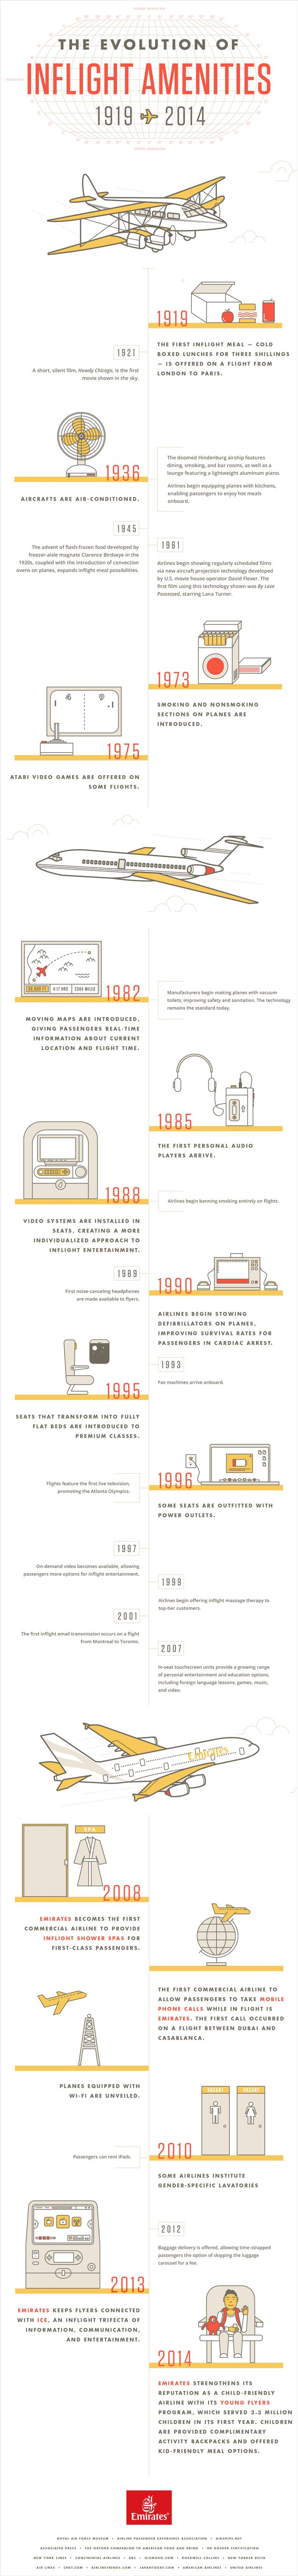 The Evolution of Inflight Amenities Infographic